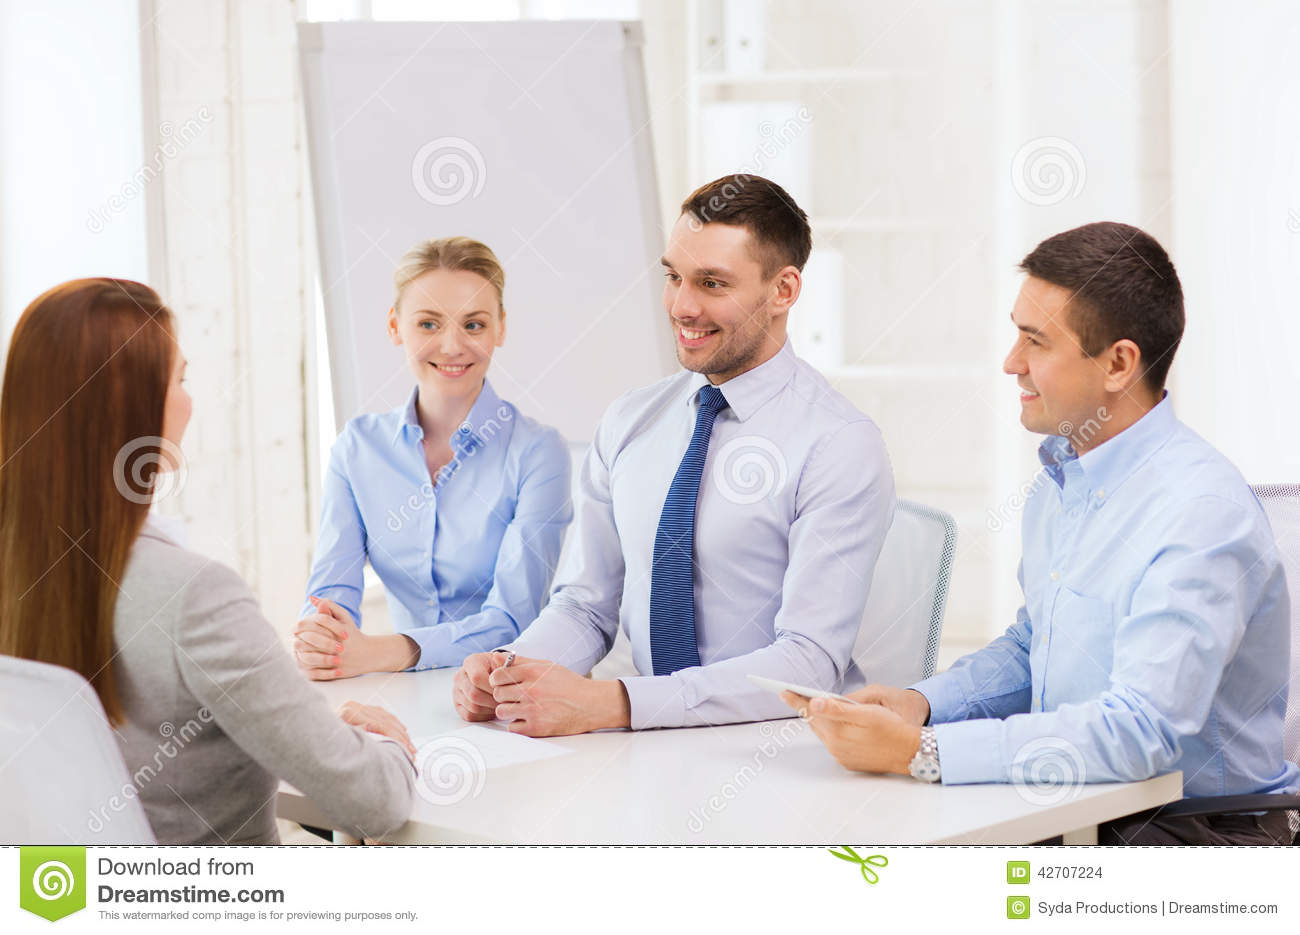 employment and interview Employment-based green card interviews are something of a formality applicant interviews are often waived when they are required, questions are likely to touch on general eligibility, verification, clarification or updating information.